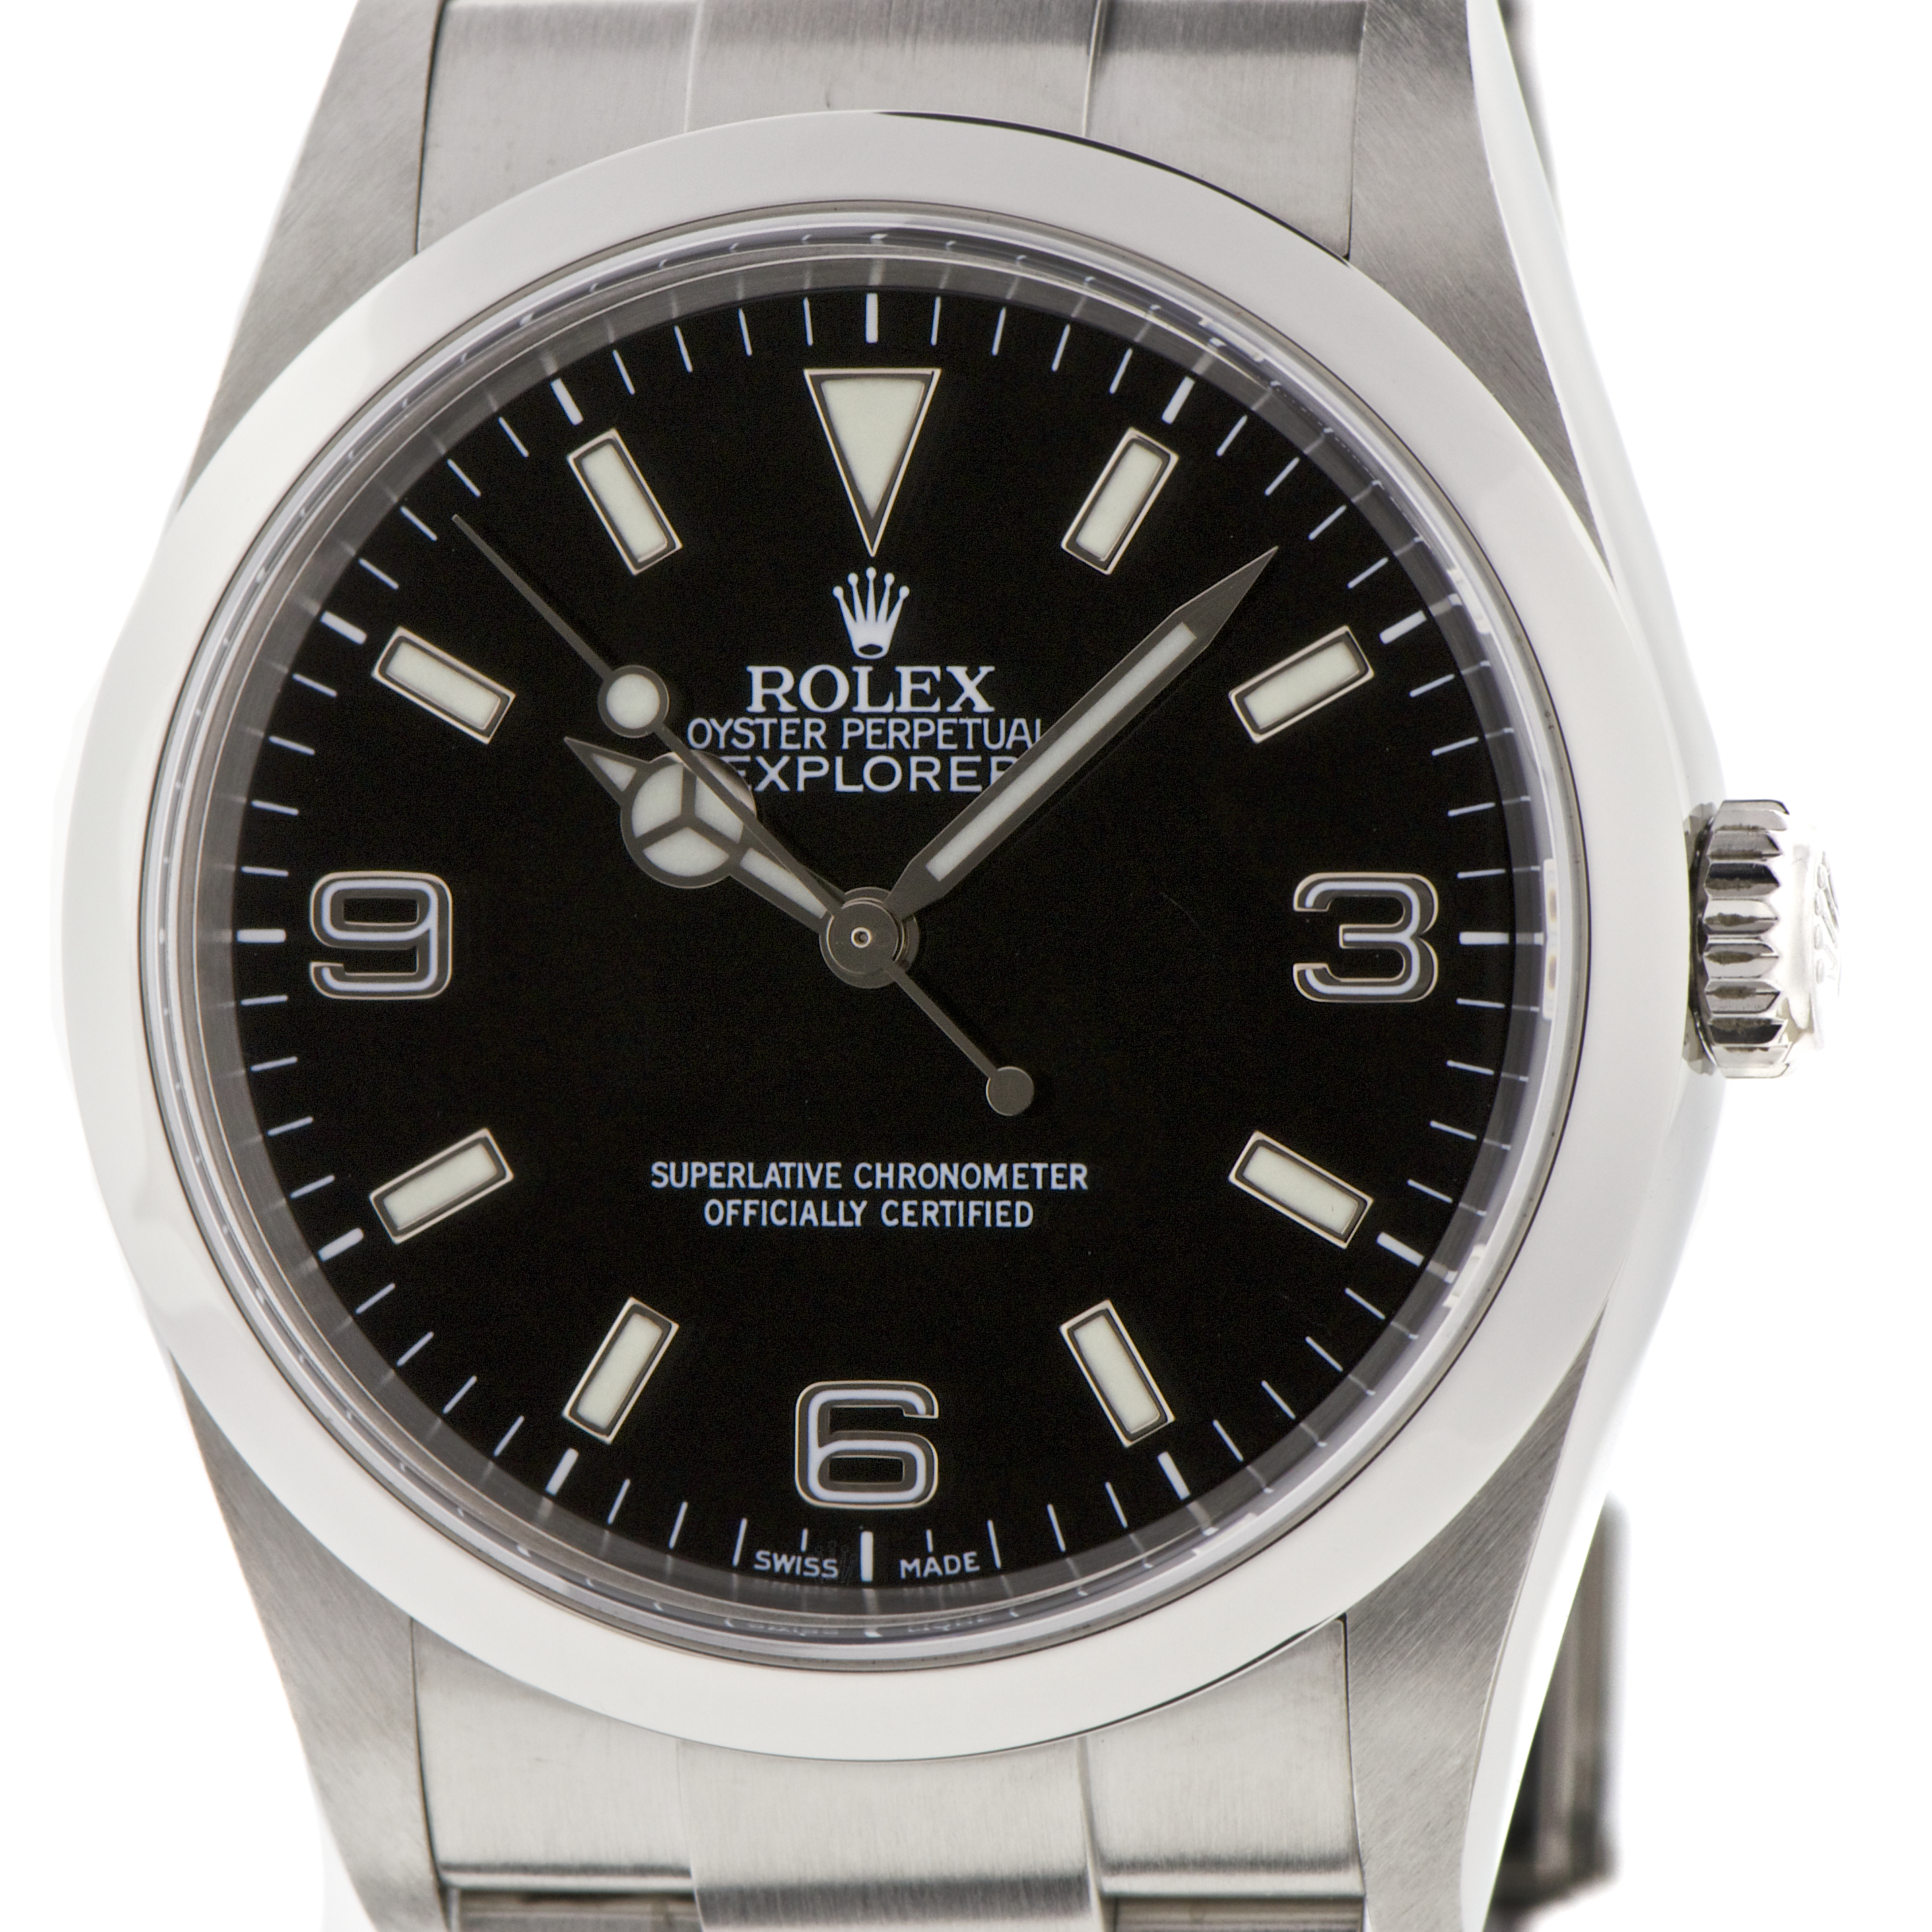 watches co next fine second rolex uk ii london explorer watch collectors stainless watchcollectors hand steel product